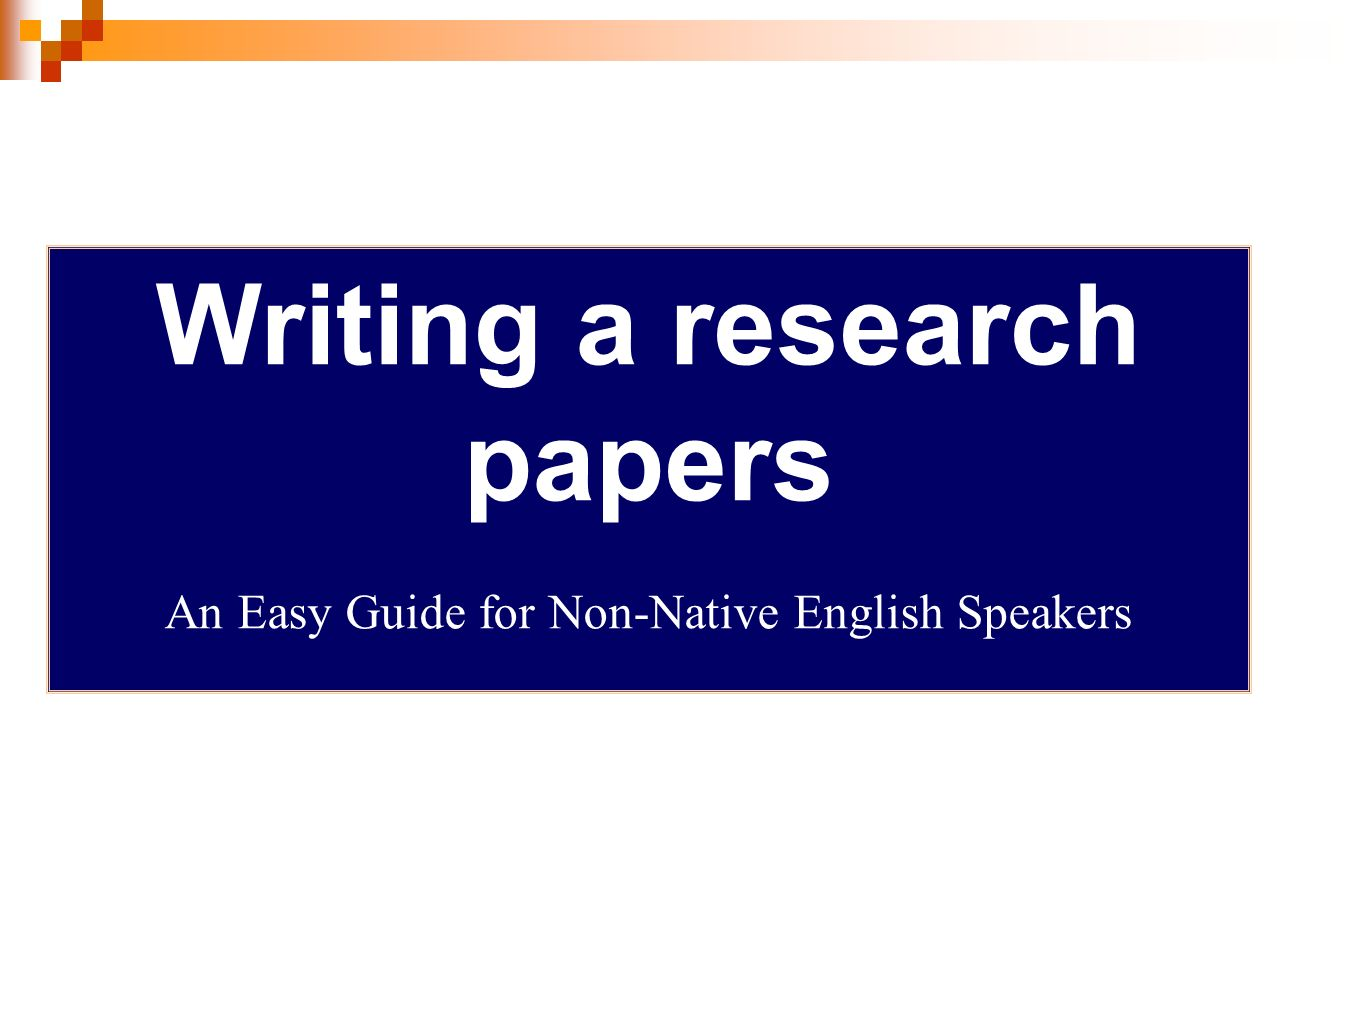 call for research papers on english literature This handout provides examples and description about writing papers in literature it discusses research topics, how to begin to research, how to use information, and formatting.